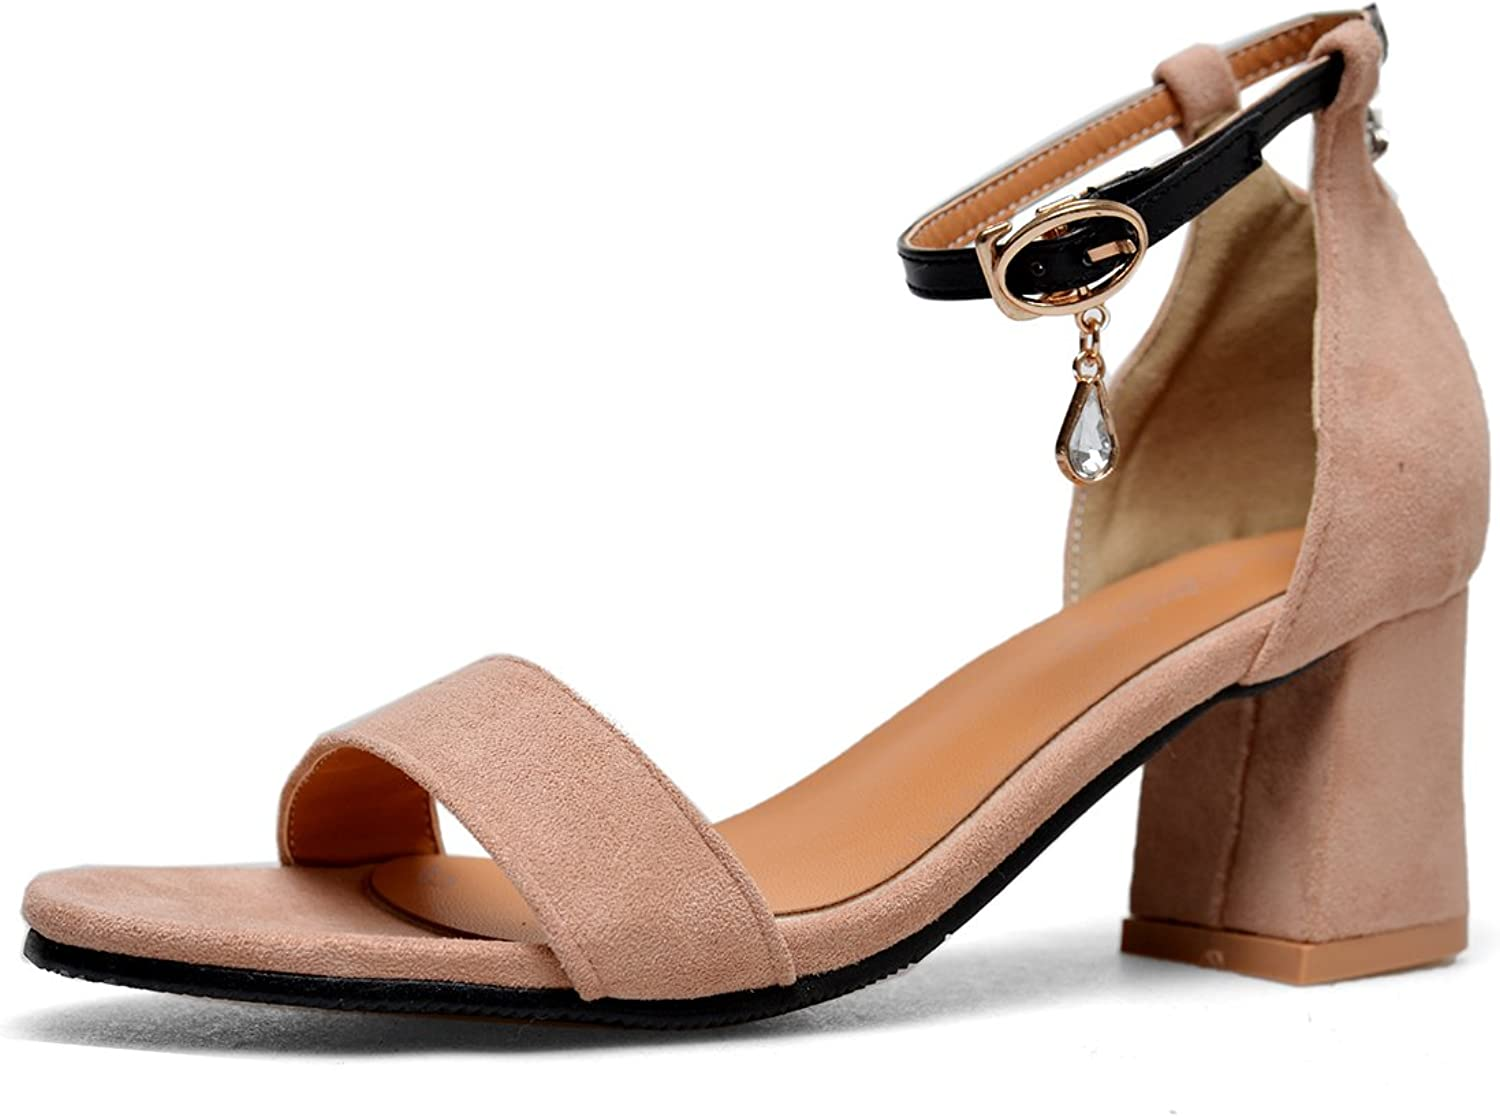 CHENSIR9 Women's Heeled Sandals Ankle Strap Chunky High Heels Open Toe Low Dress Sandals Party shoes